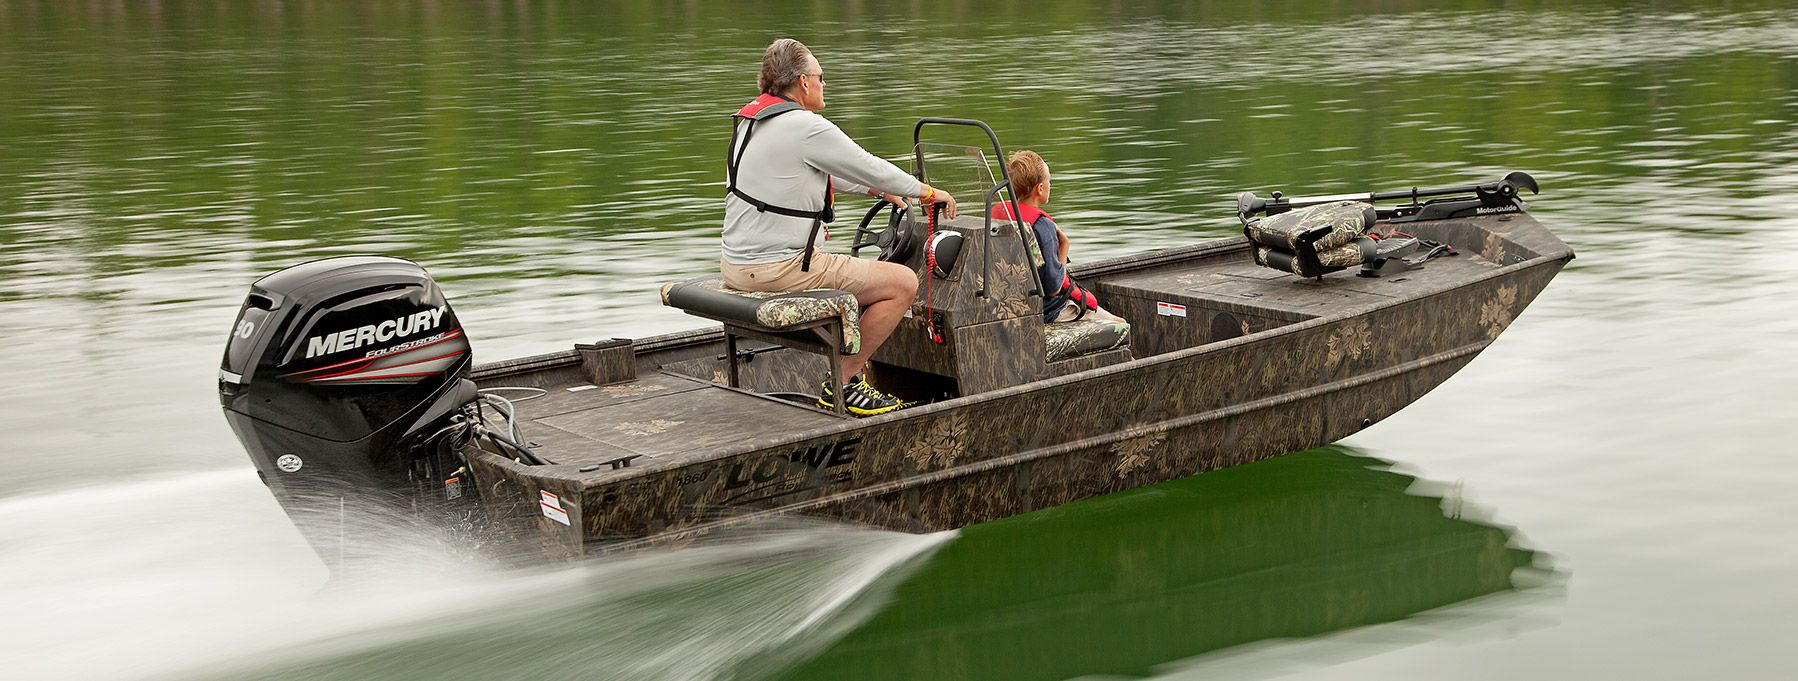 Aluminum river jet boats quotes - Roughneck 1860 Cc Jon Boat Is Extra Rugged And Up To Any Task Fishing Hunting Or Your Daily Needs Request A Quote On A New Jon Boat For Sale Today